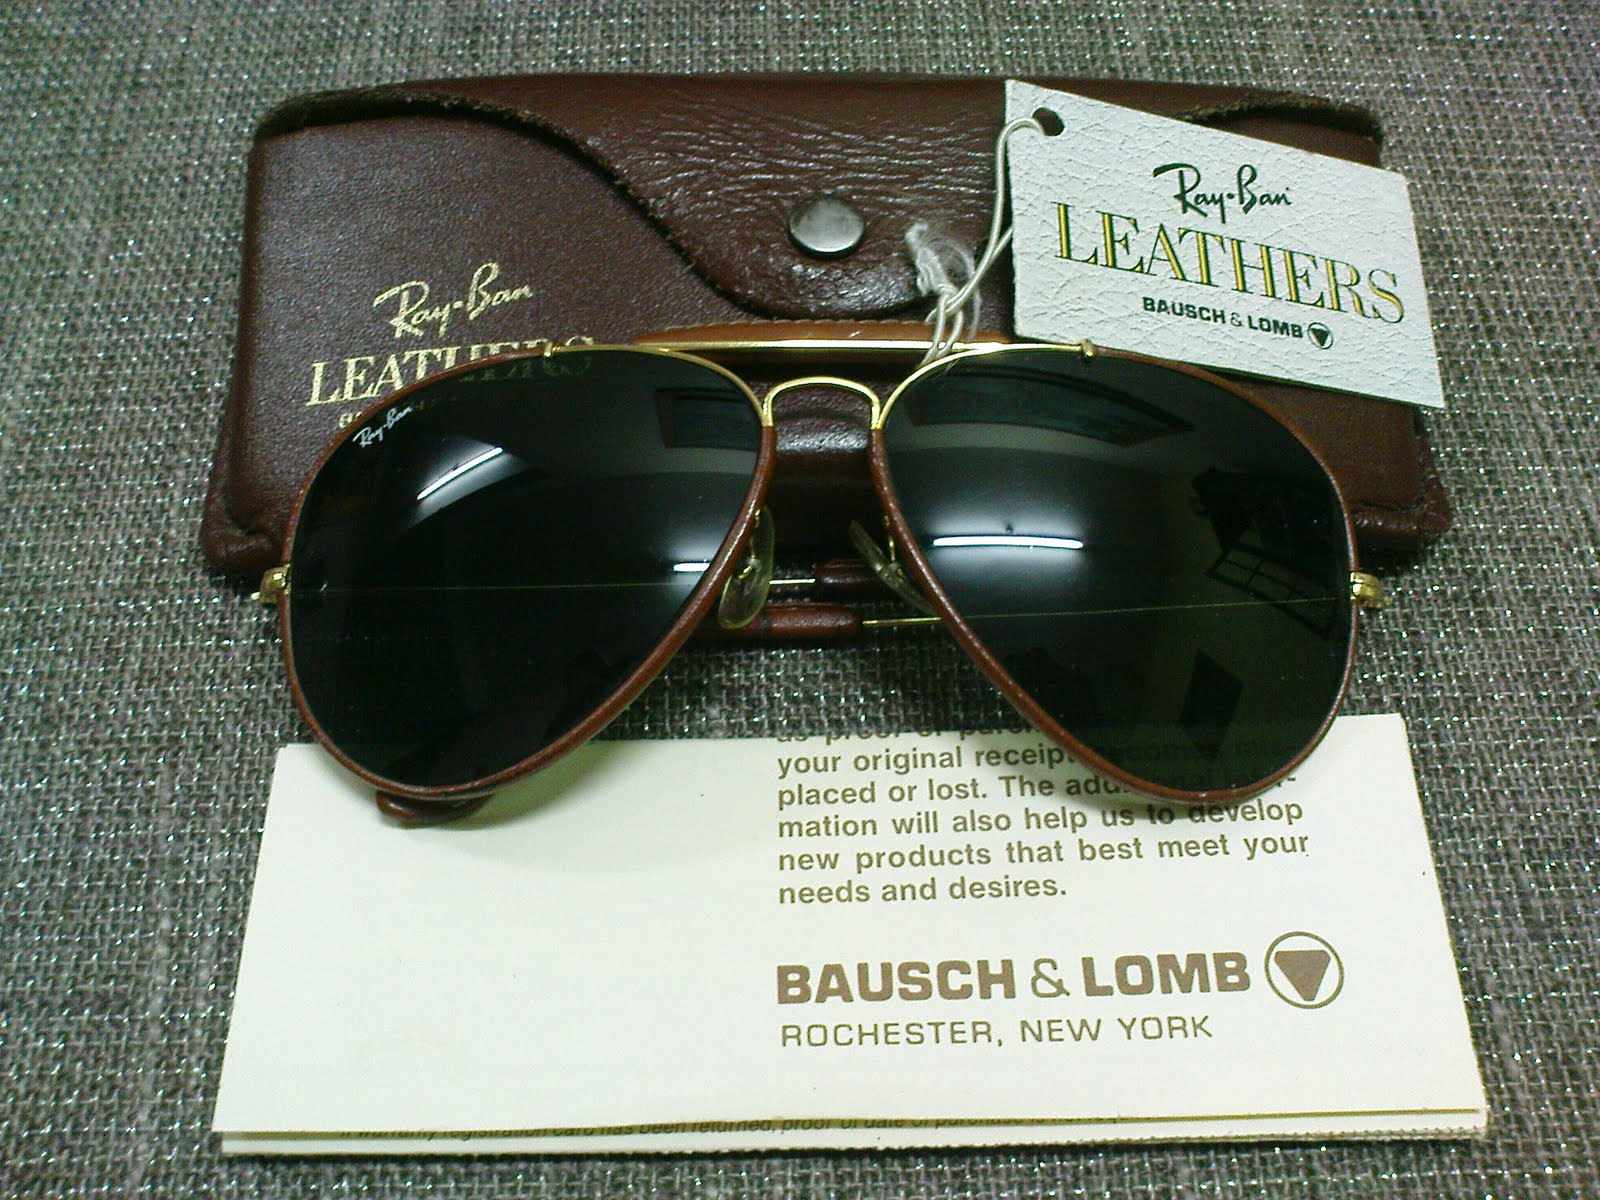 ray ban outdoorsman 7rhj  SOLDRay Ban Outdoorsman II Leather G-15 LensesSOLD